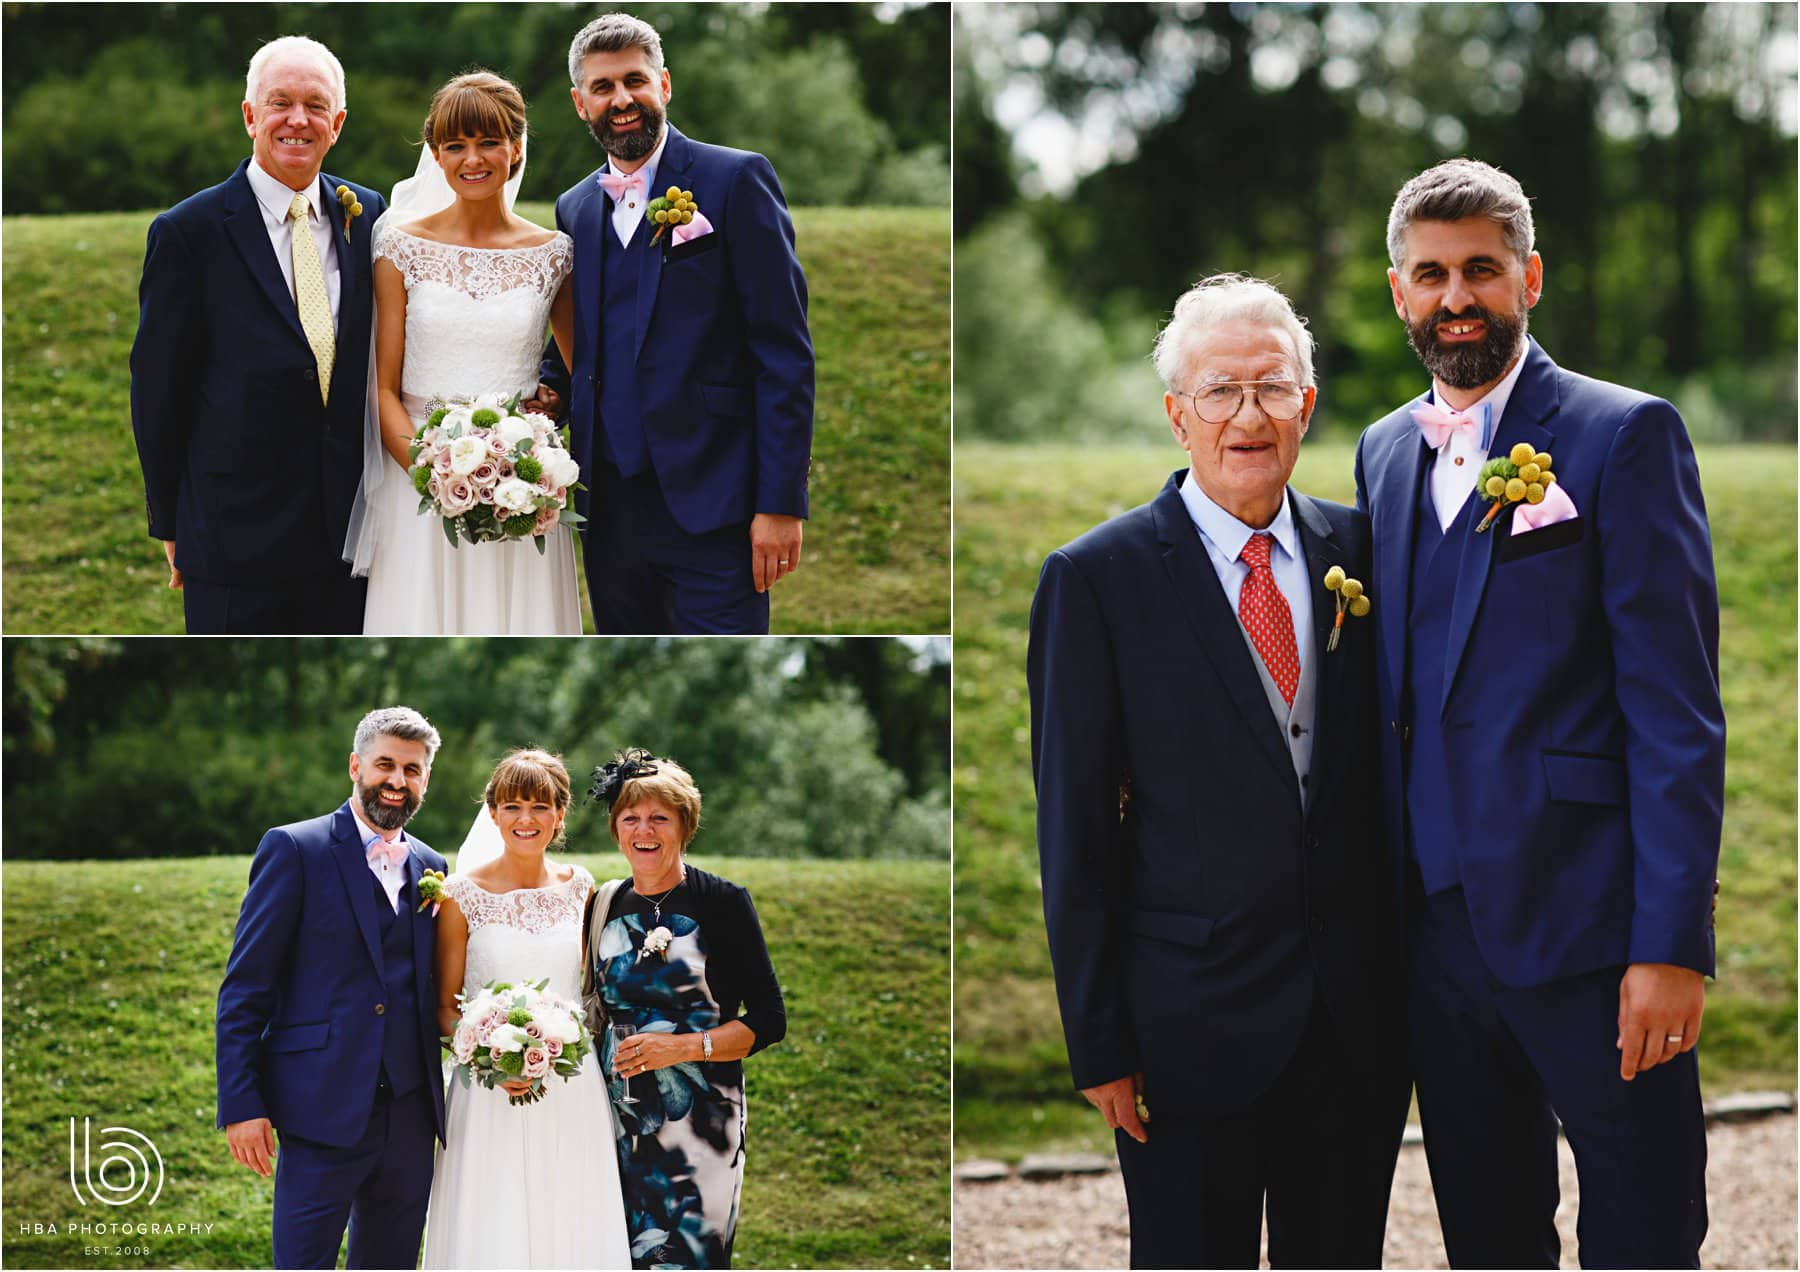 the bride & groom with their parents